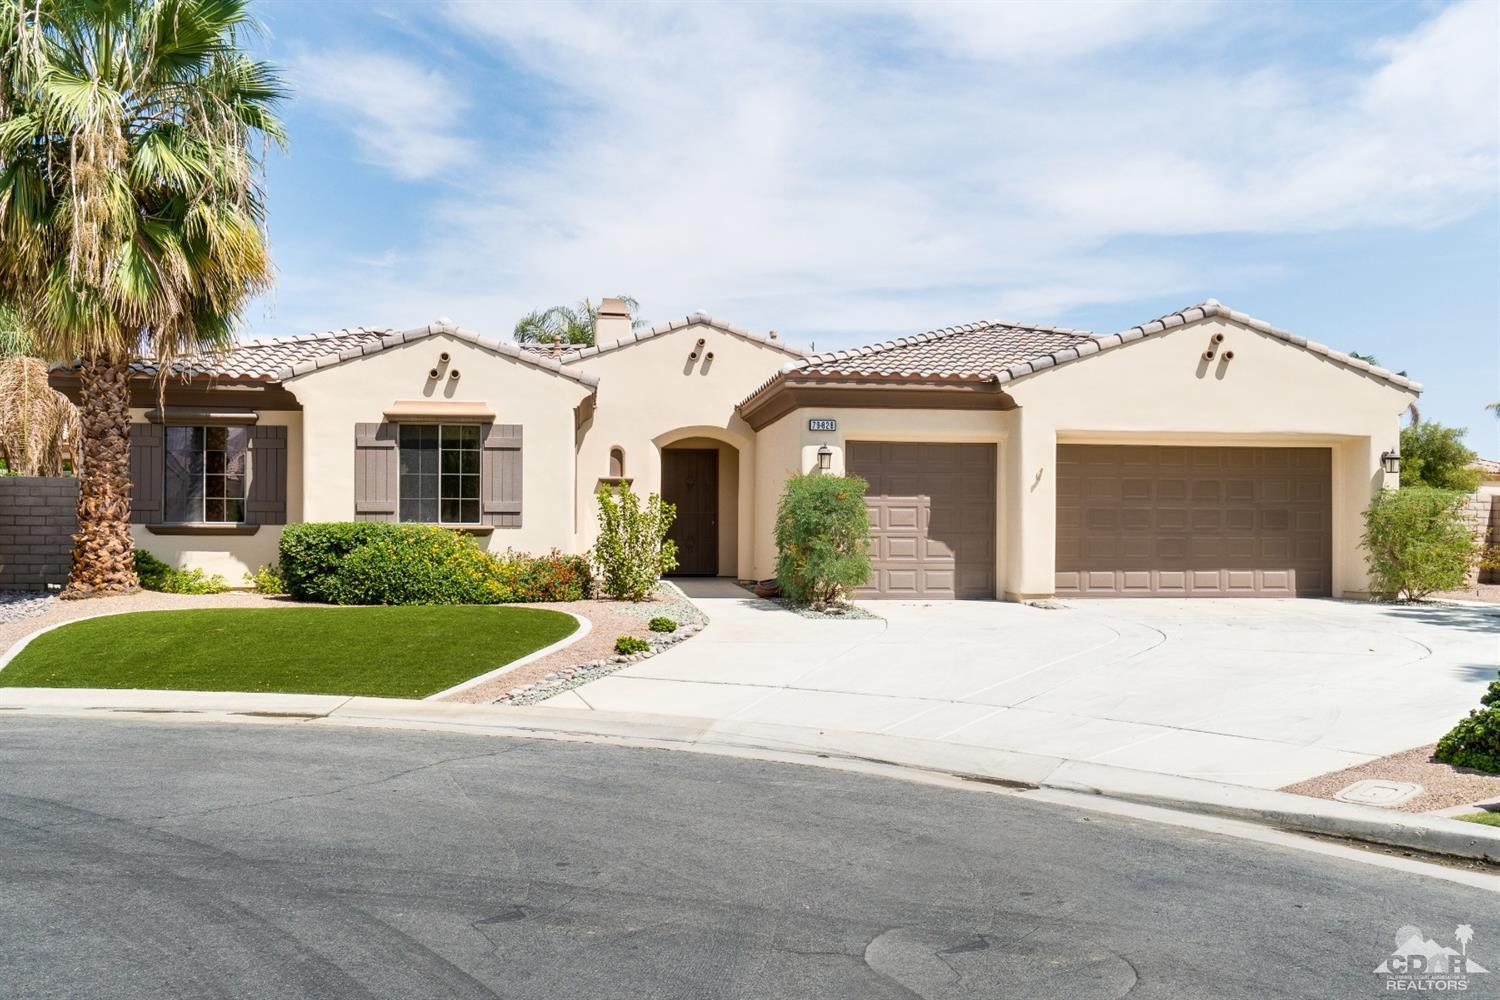 79828 Joey Ct. Court, La Quinta